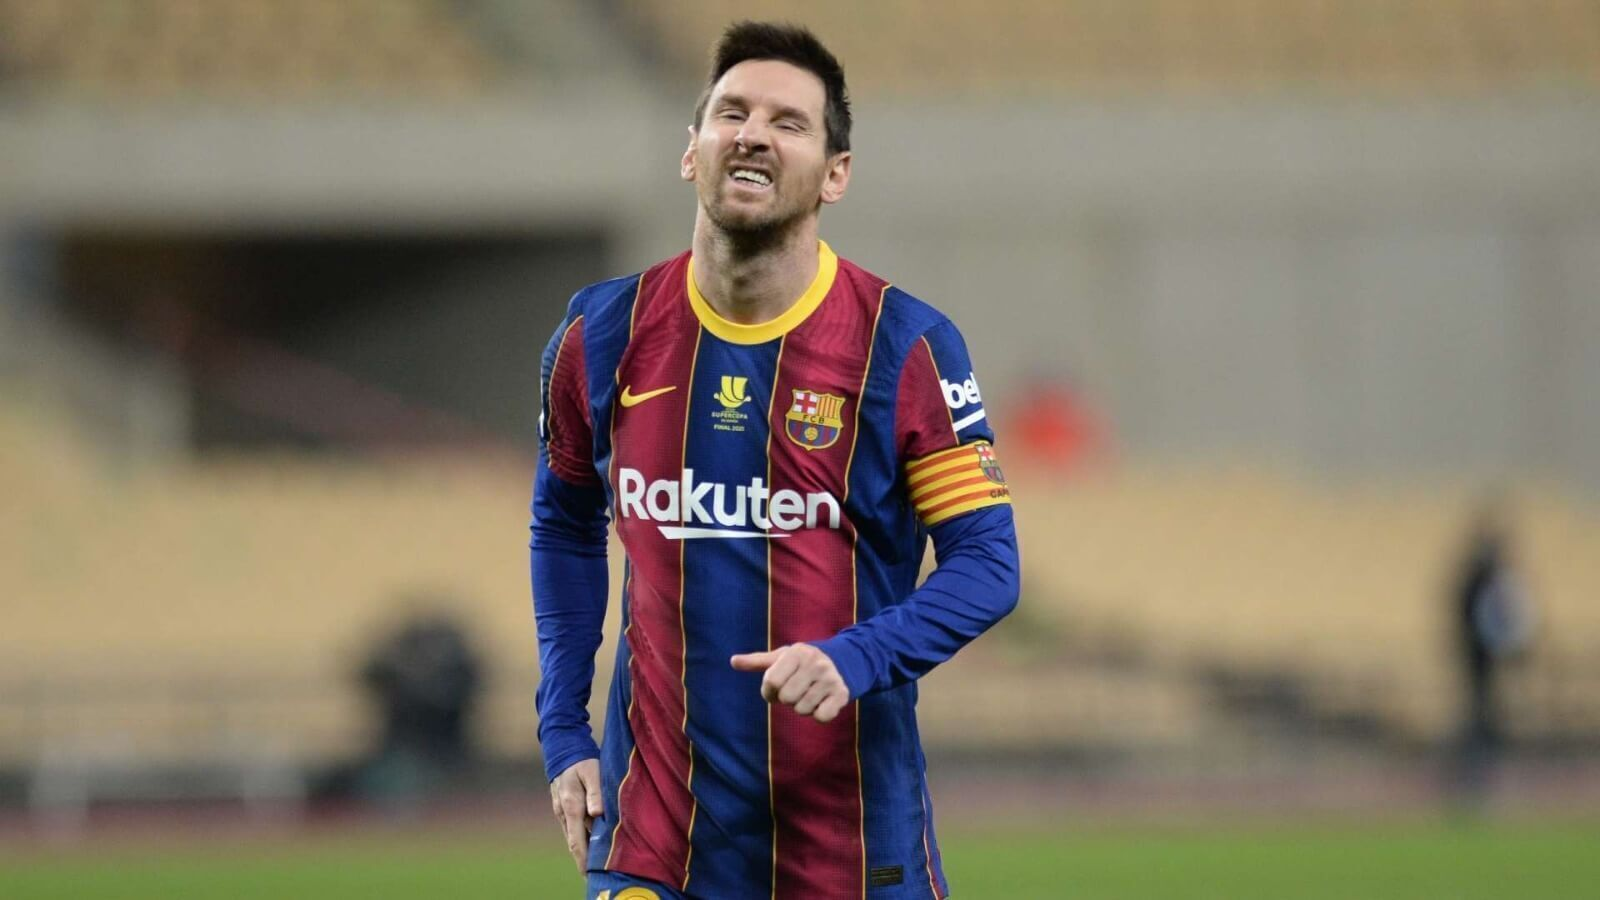 Lionel Messi will leave Barca due to financial problems